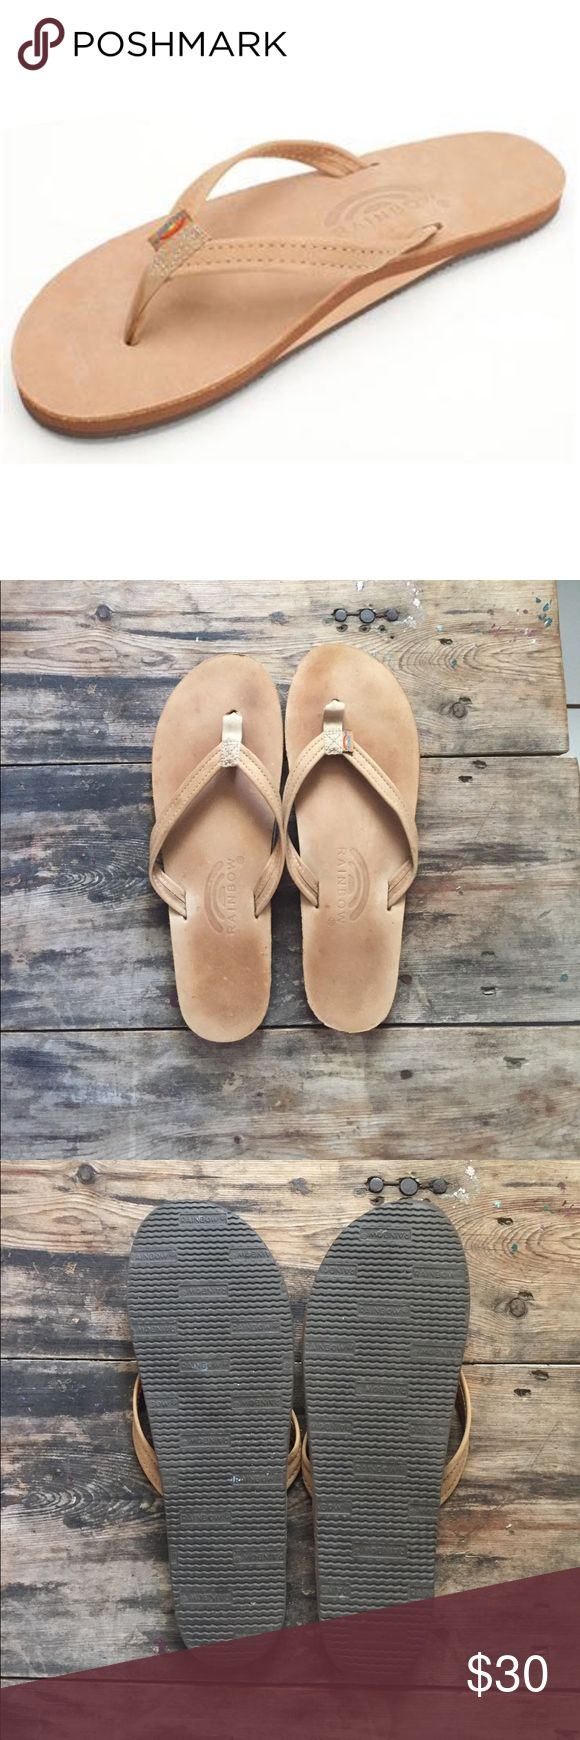 Rainbow sandals Great condition!! Only worn once. Very faint foot print. Tan. Size large 7.5-8.5 Rainbow Shoes Sandals